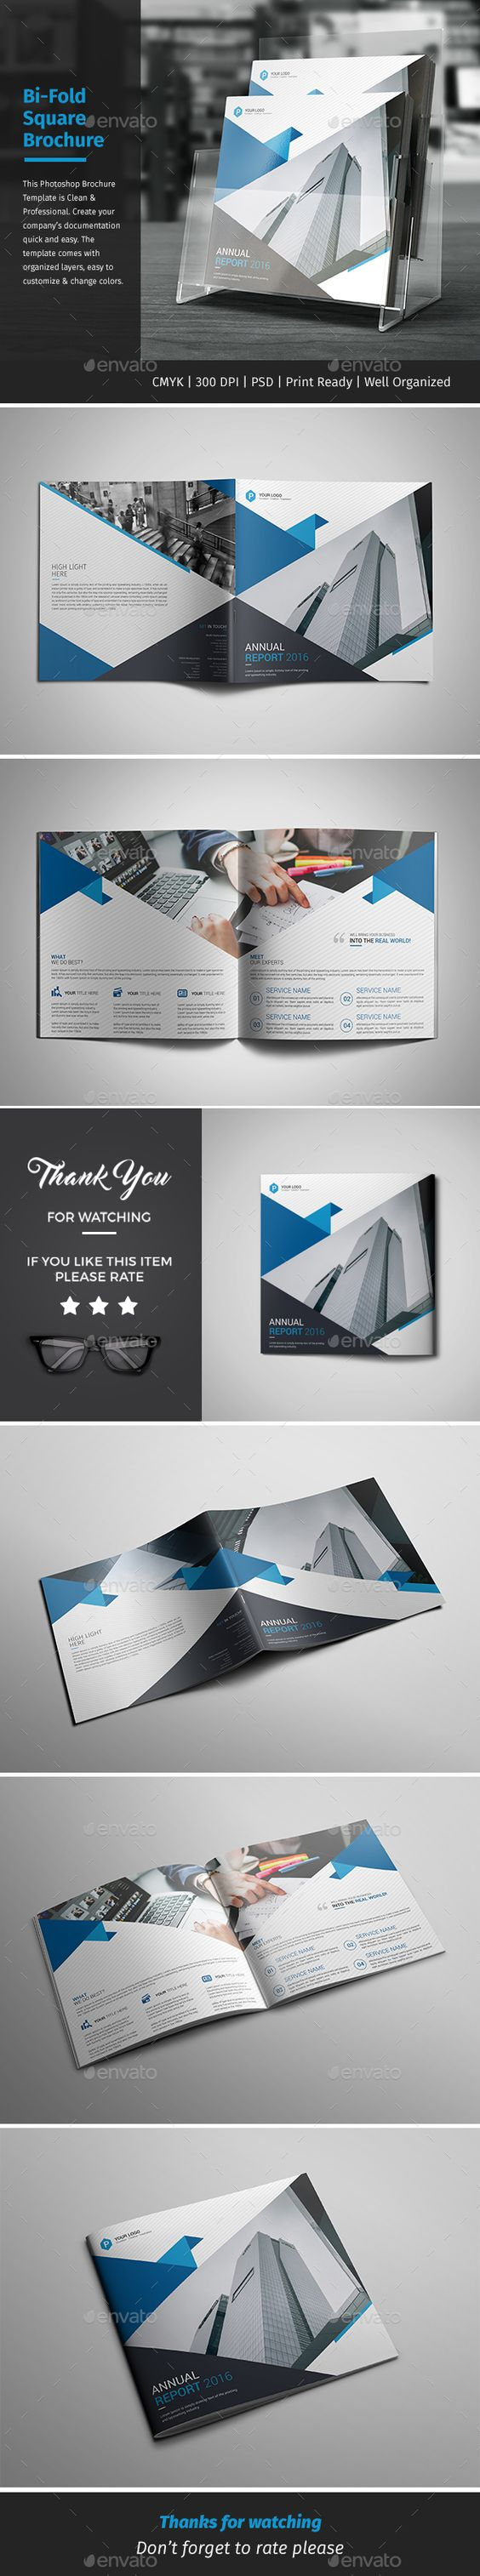 Corporate Bi-fold Square Brochure Template PSD. Download here: http://graphicriver.net/item/corporate-bifold-square-brochure-10/16668484?ref=ksioks